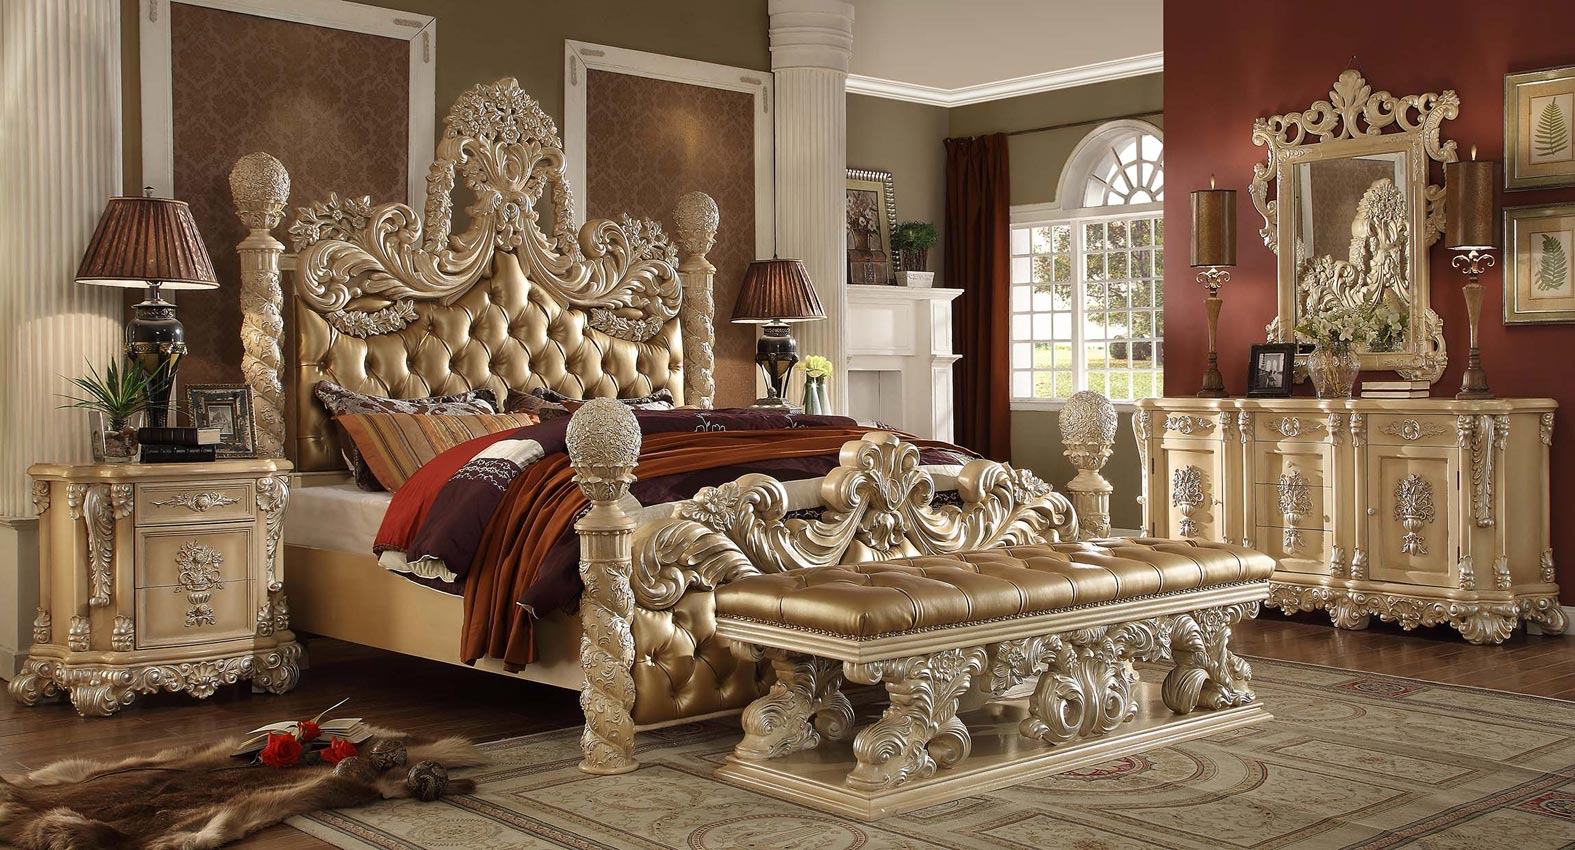 King ivory elegant bed frame for Elegant white bedroom furniture